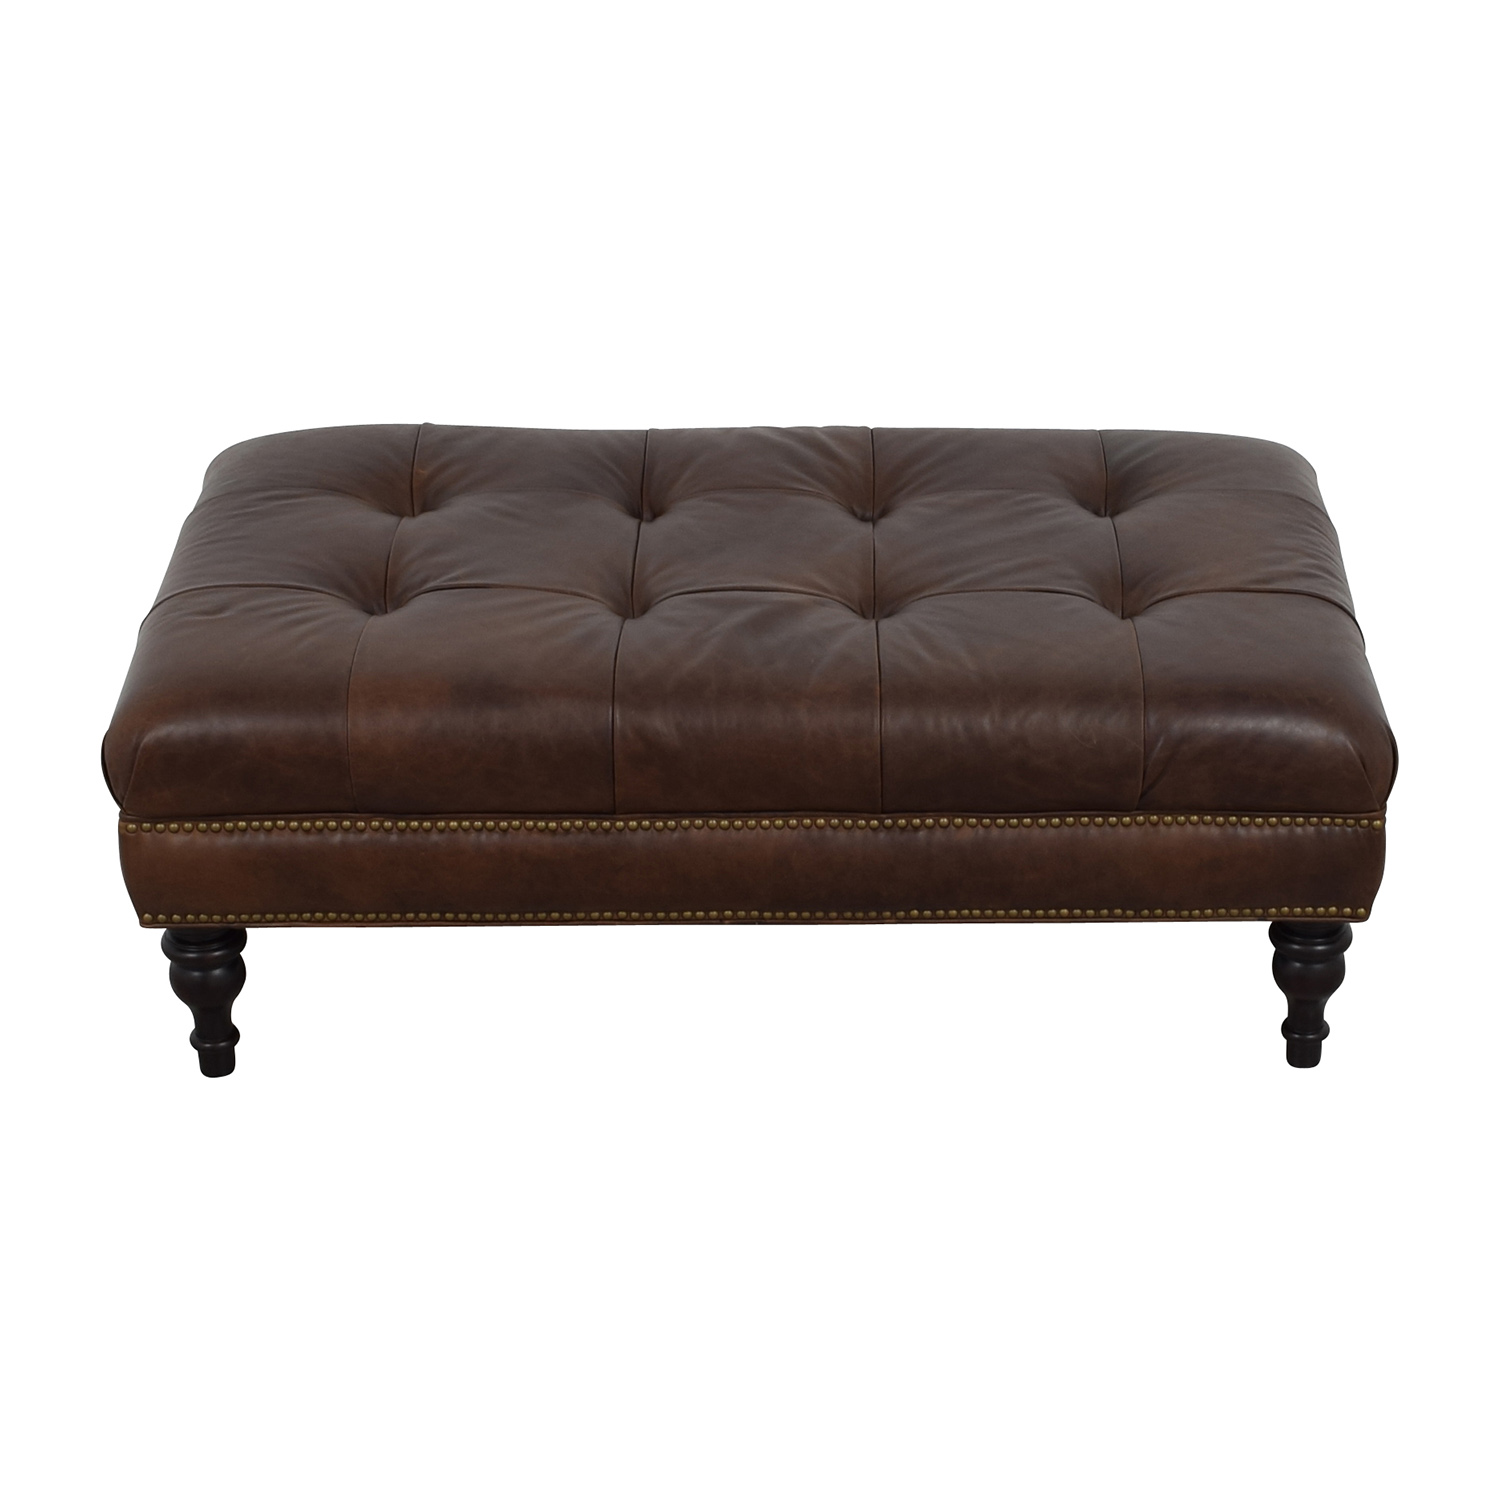 75% OFF Restoration Hardware Restoration Hardware Brown Leather